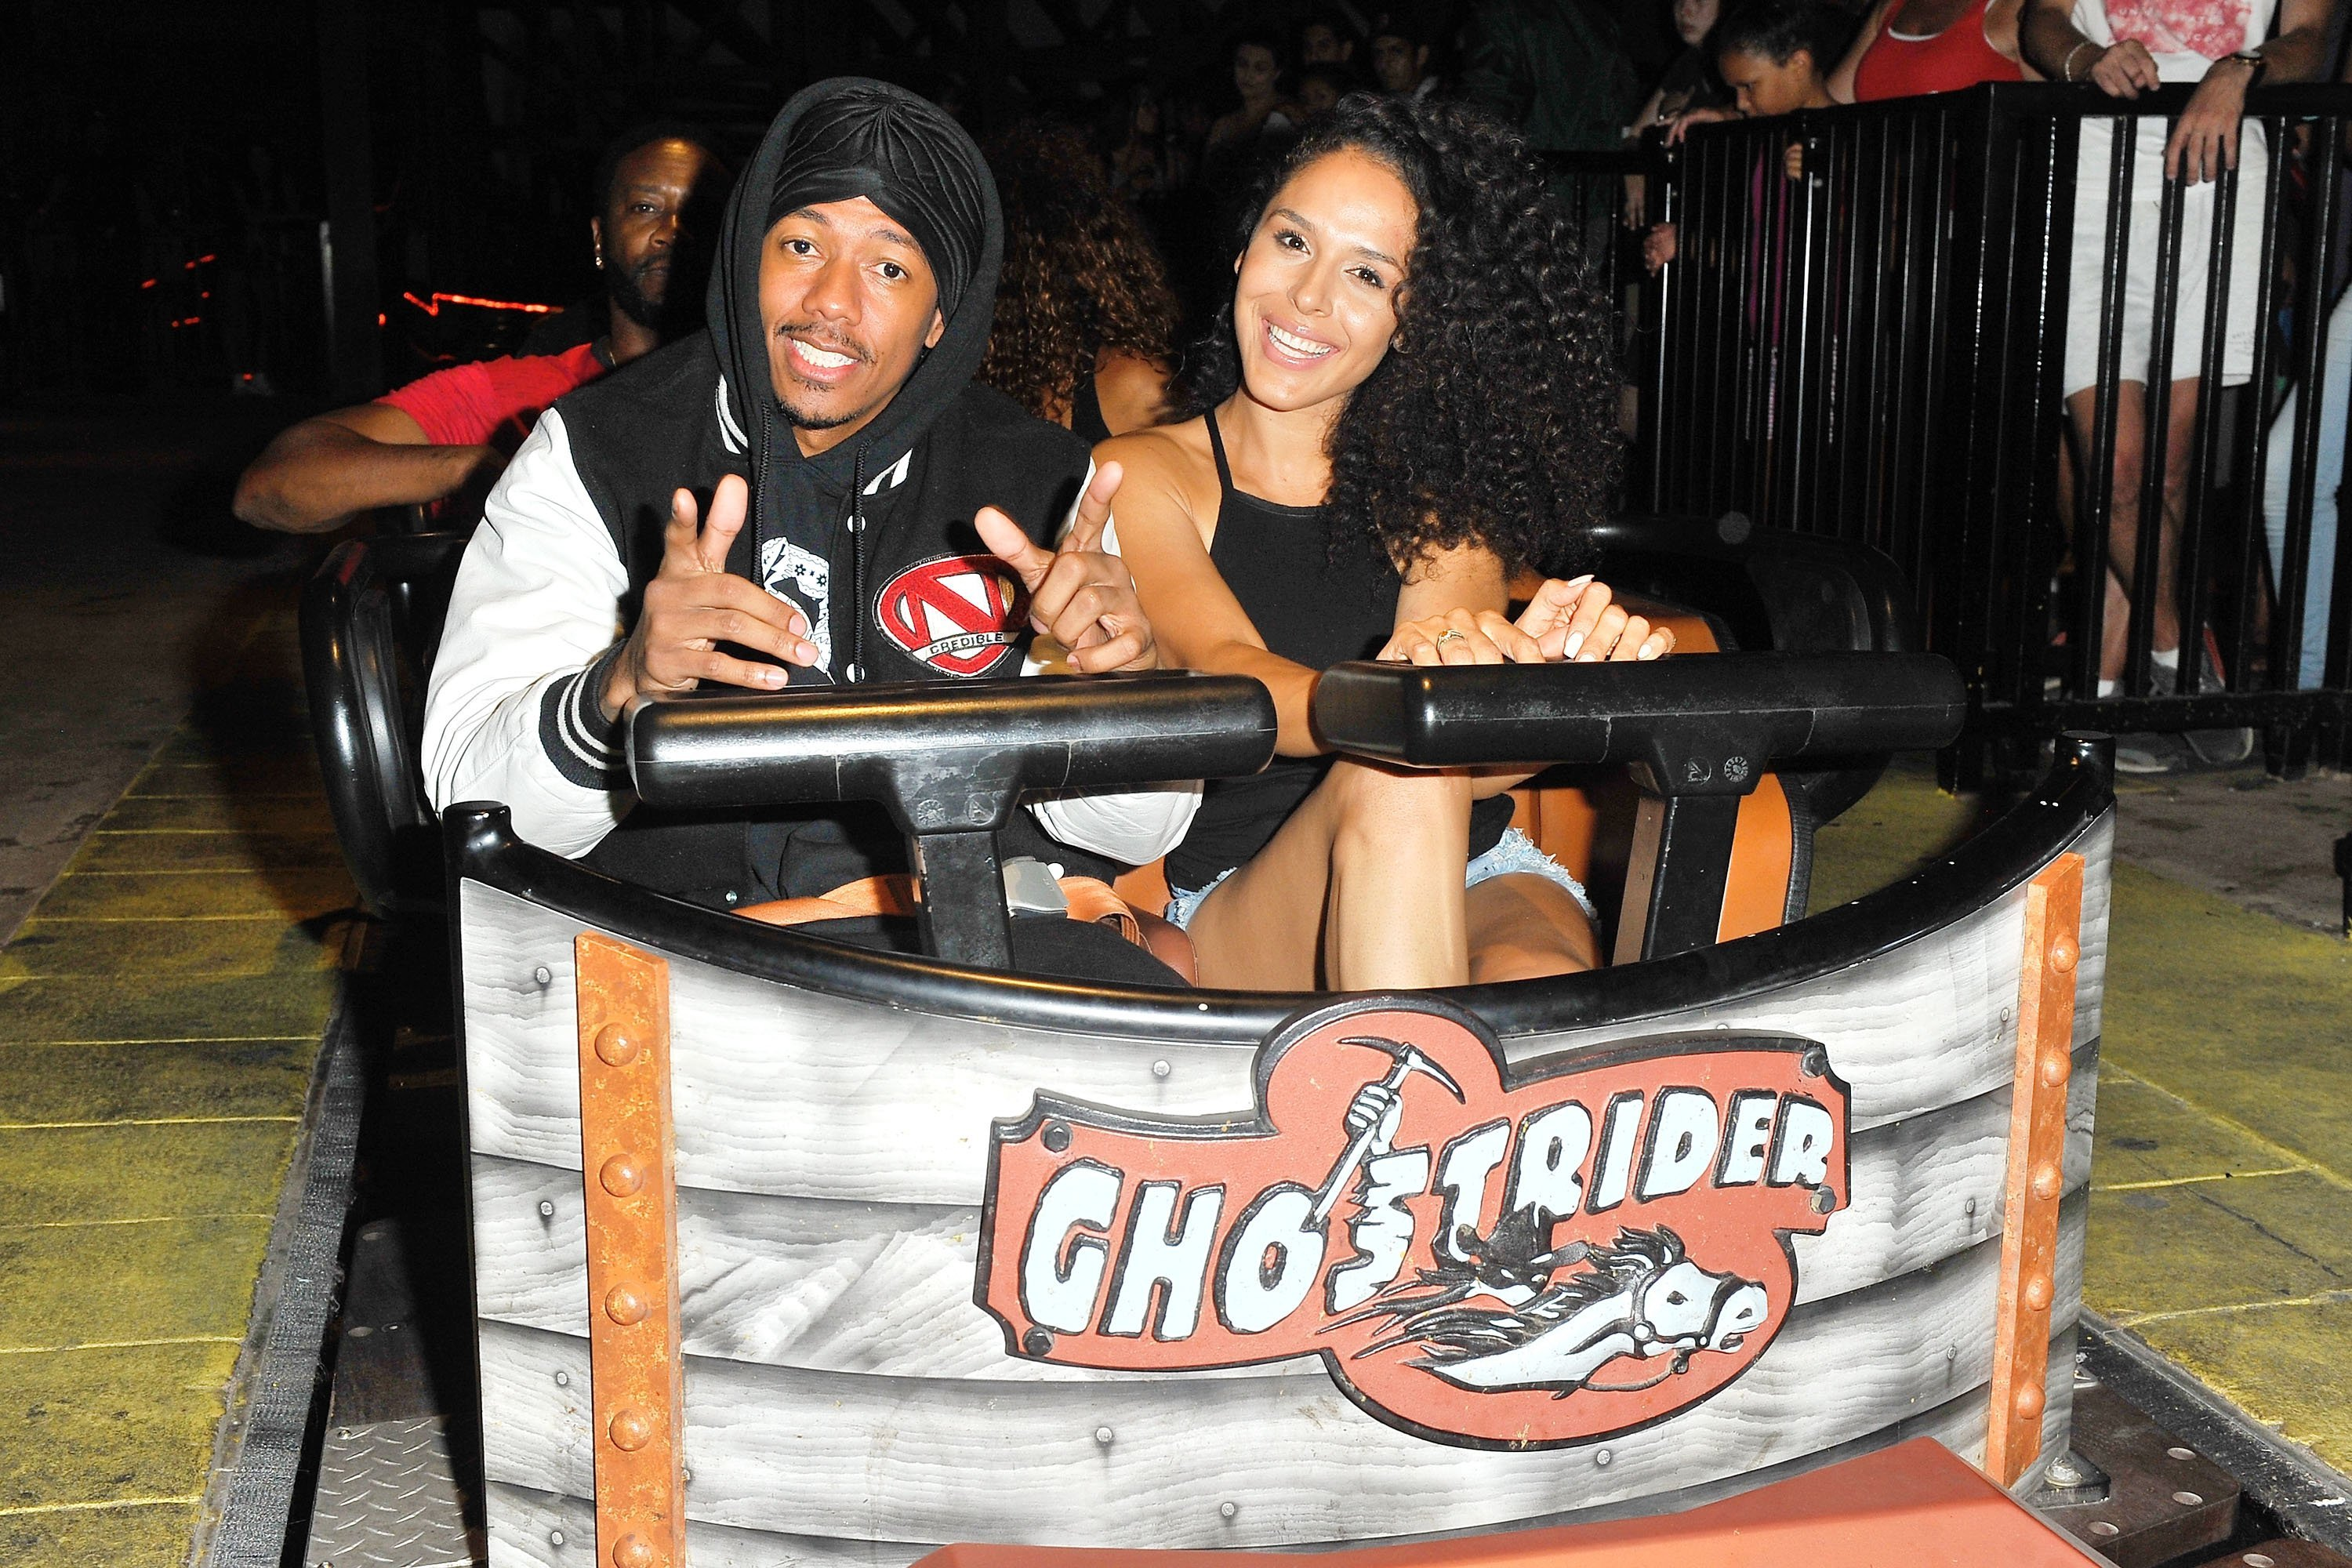 Nick Cannon with the mother of his third child, Brittany Bell at Knotts Berry Farm in September 2017. | Photo: Getty Images